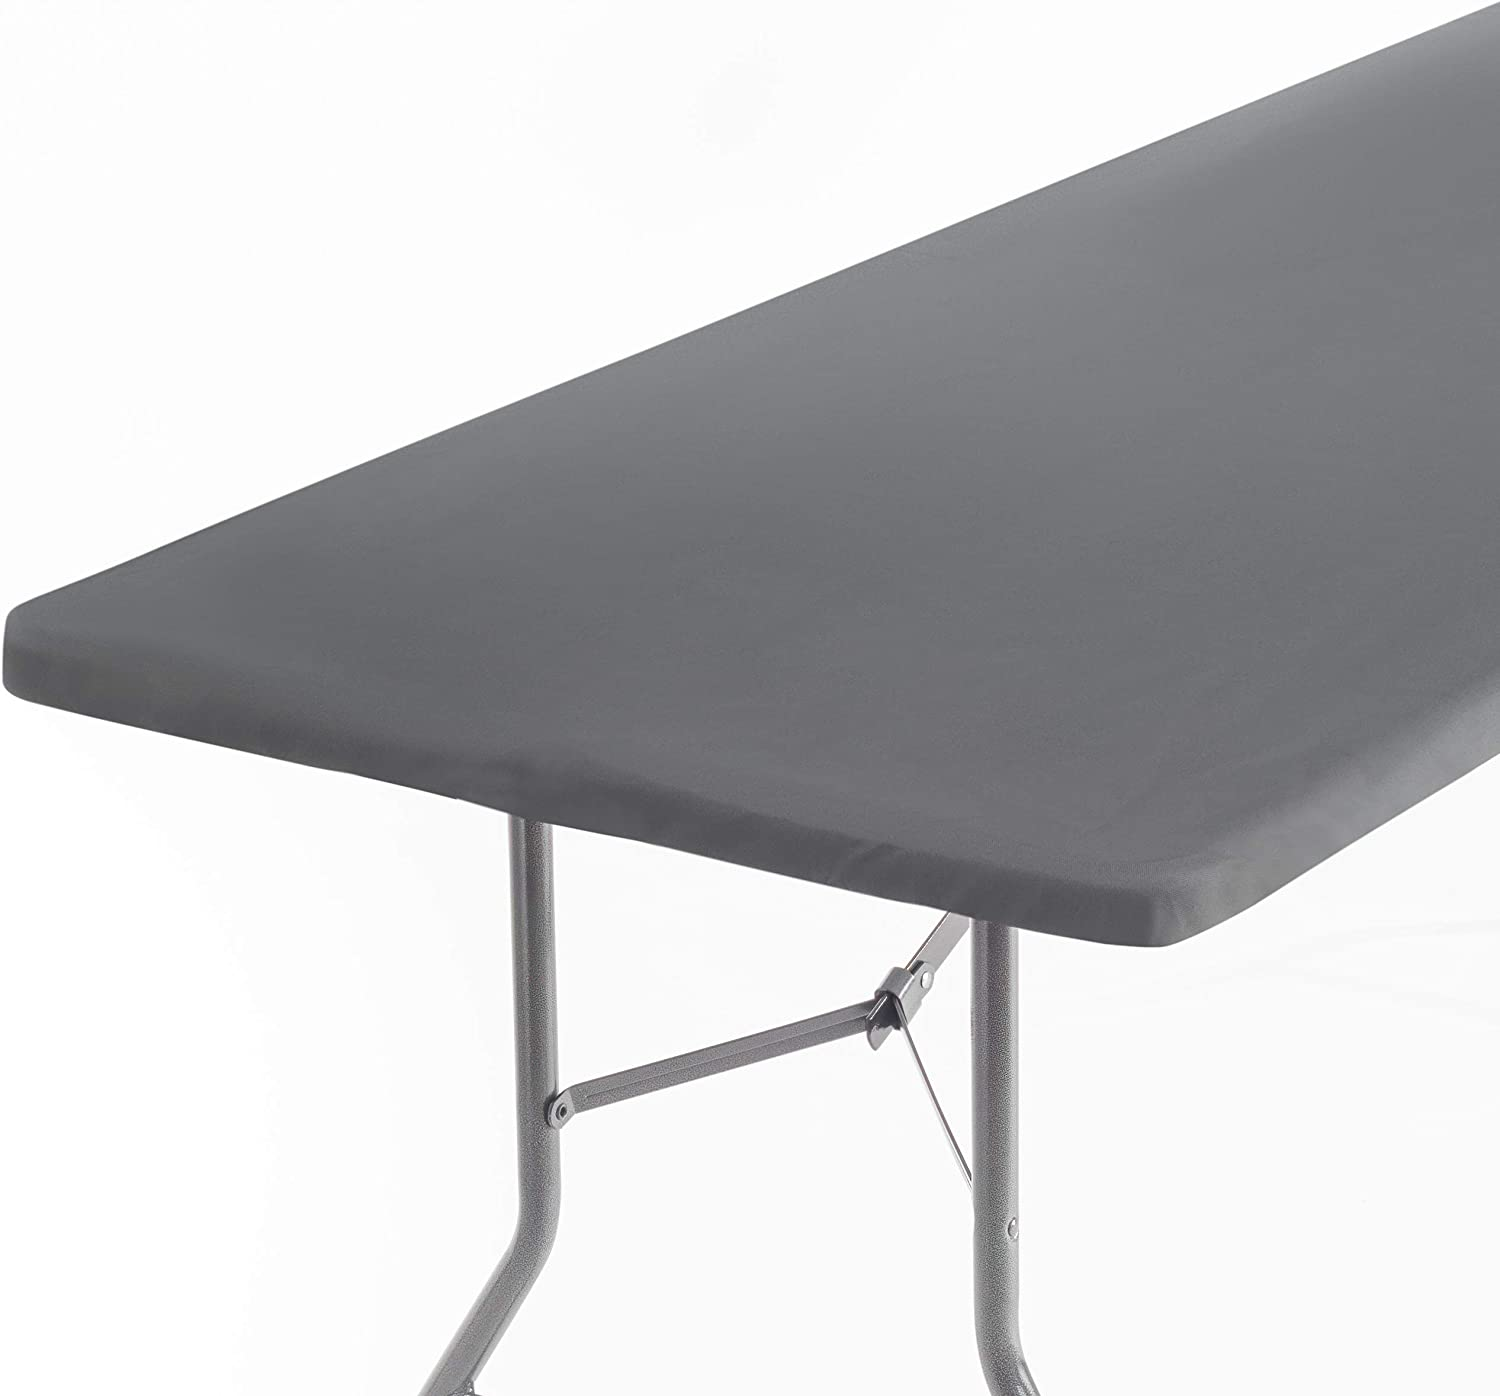 Signature Home Fitted Tablecloth Rectangle Grey Table Cover - 72 x 32 in Table Cloth - Fitted Table Covers for 6 Foot Tables. Washable Picnic Table Cover Indoor Outdoor Tablecloth Elastic Tablecloth